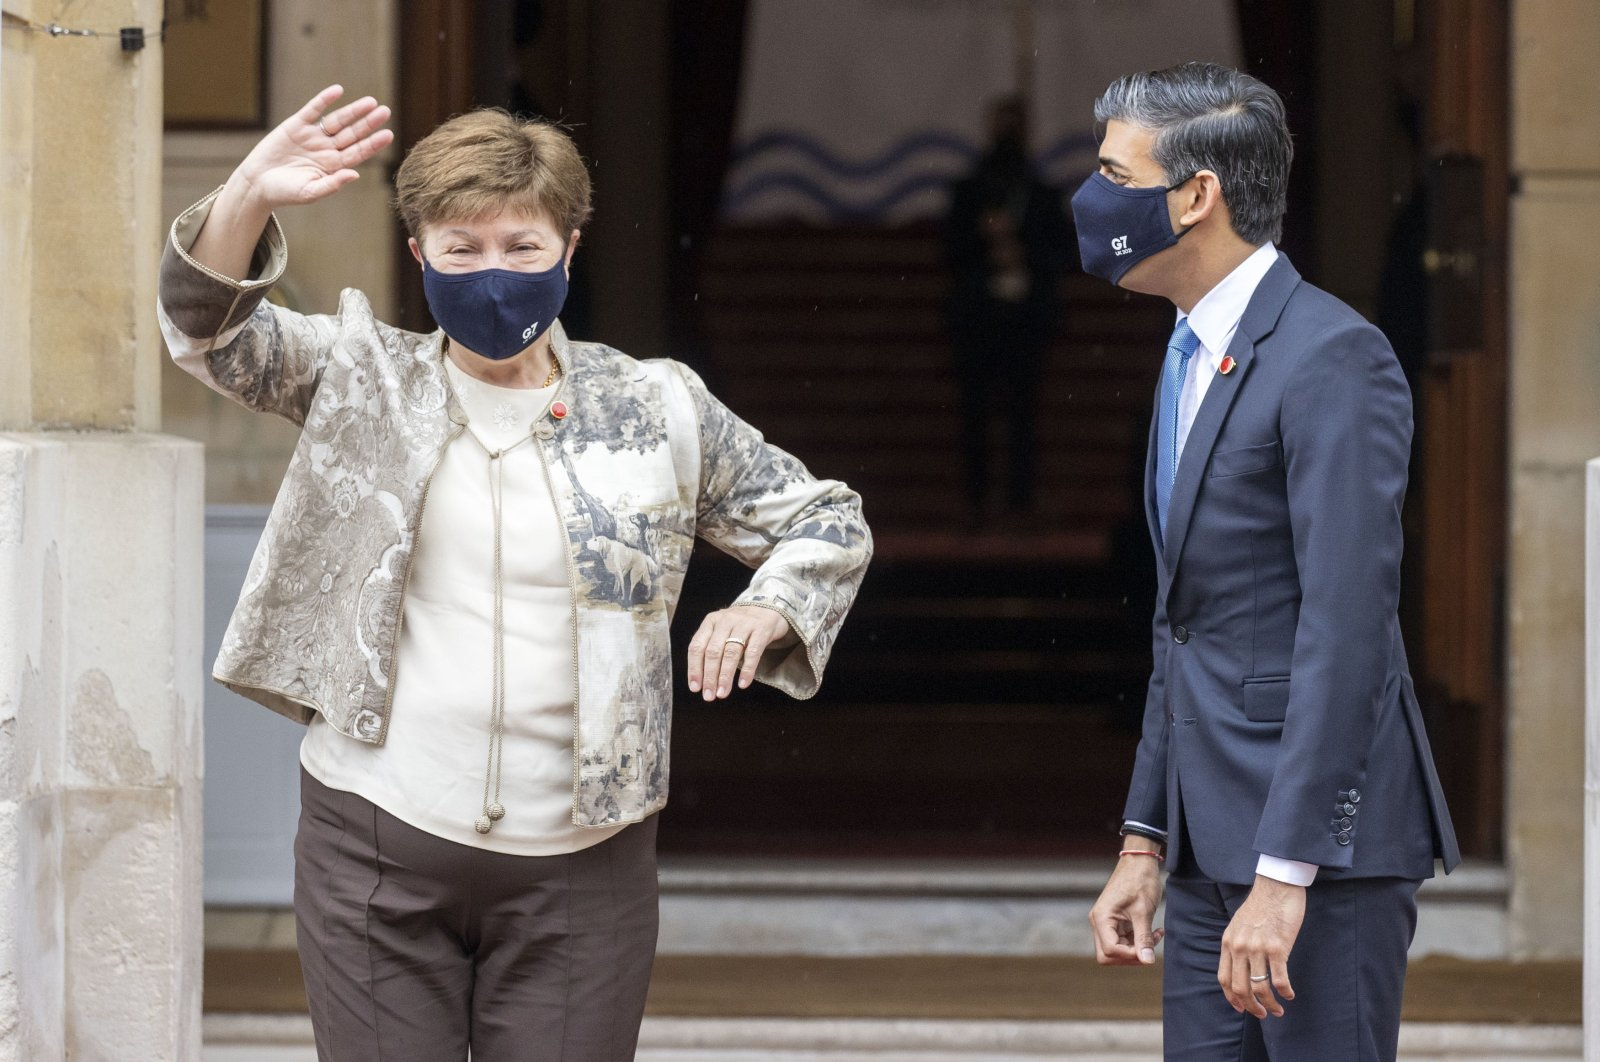 Britain's chancellor of the exchequer, Rishi Sunak (R), welcomes Kristalina Georgieva from the IMF ahead of the G-7 finance ministers meeting at Lancaster House in London, Britain, June 4, 2021. (Steve Reigate/Pool via AP)